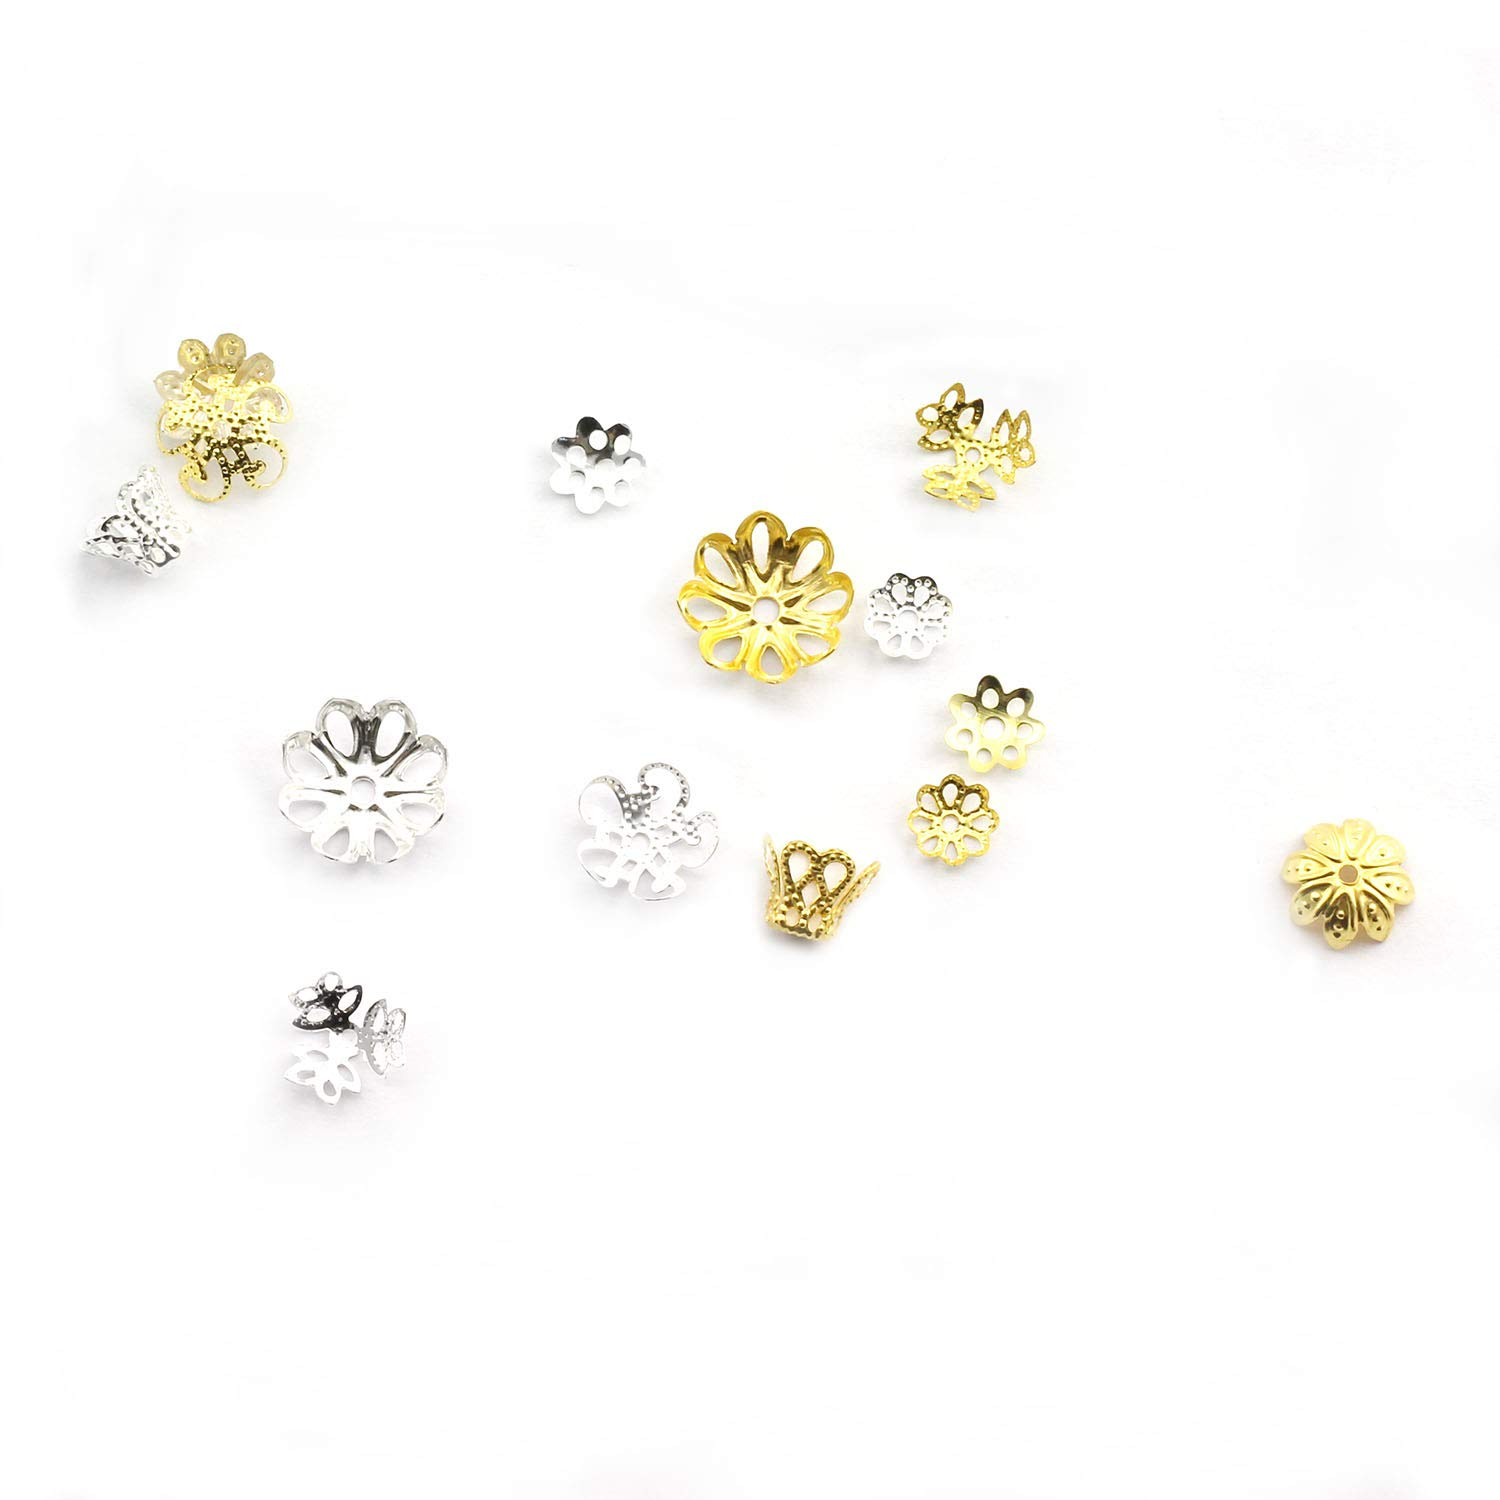 7 Kinds Hollow Flower Filigree Spacer Tassel Charms Accessories for Jewelry Making DIY Cord Caps NX Garden 350pcs Silver Jewelry Bead Caps Assorted Kit End Caps